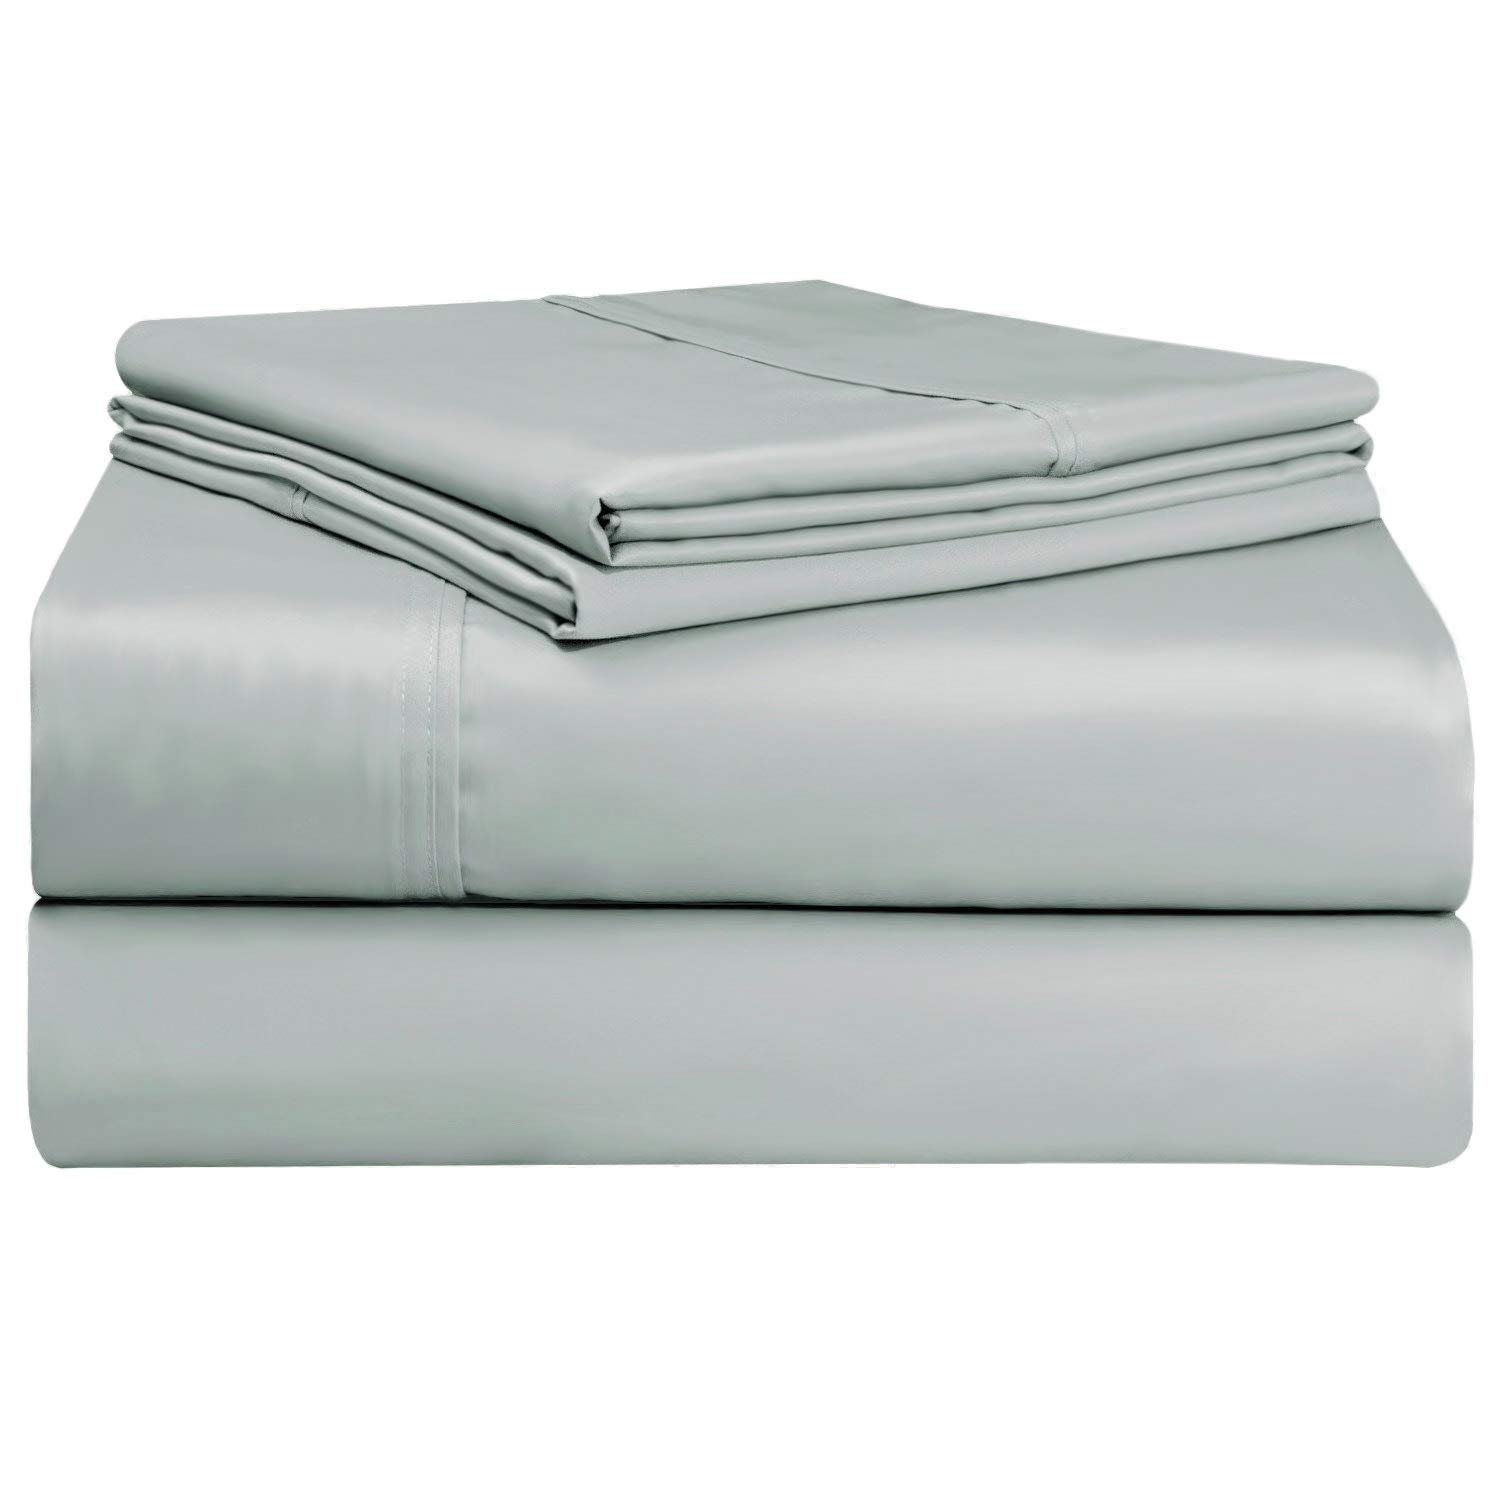 400 Thread Count Pillowcases King White, 100% Long Staple Cotton Pillow Cases King 2 Pack, Luxurious Soft Sateen Weave Pillow Covers (100% Cotton Pillow Cases White King 2 PC) Pizuna